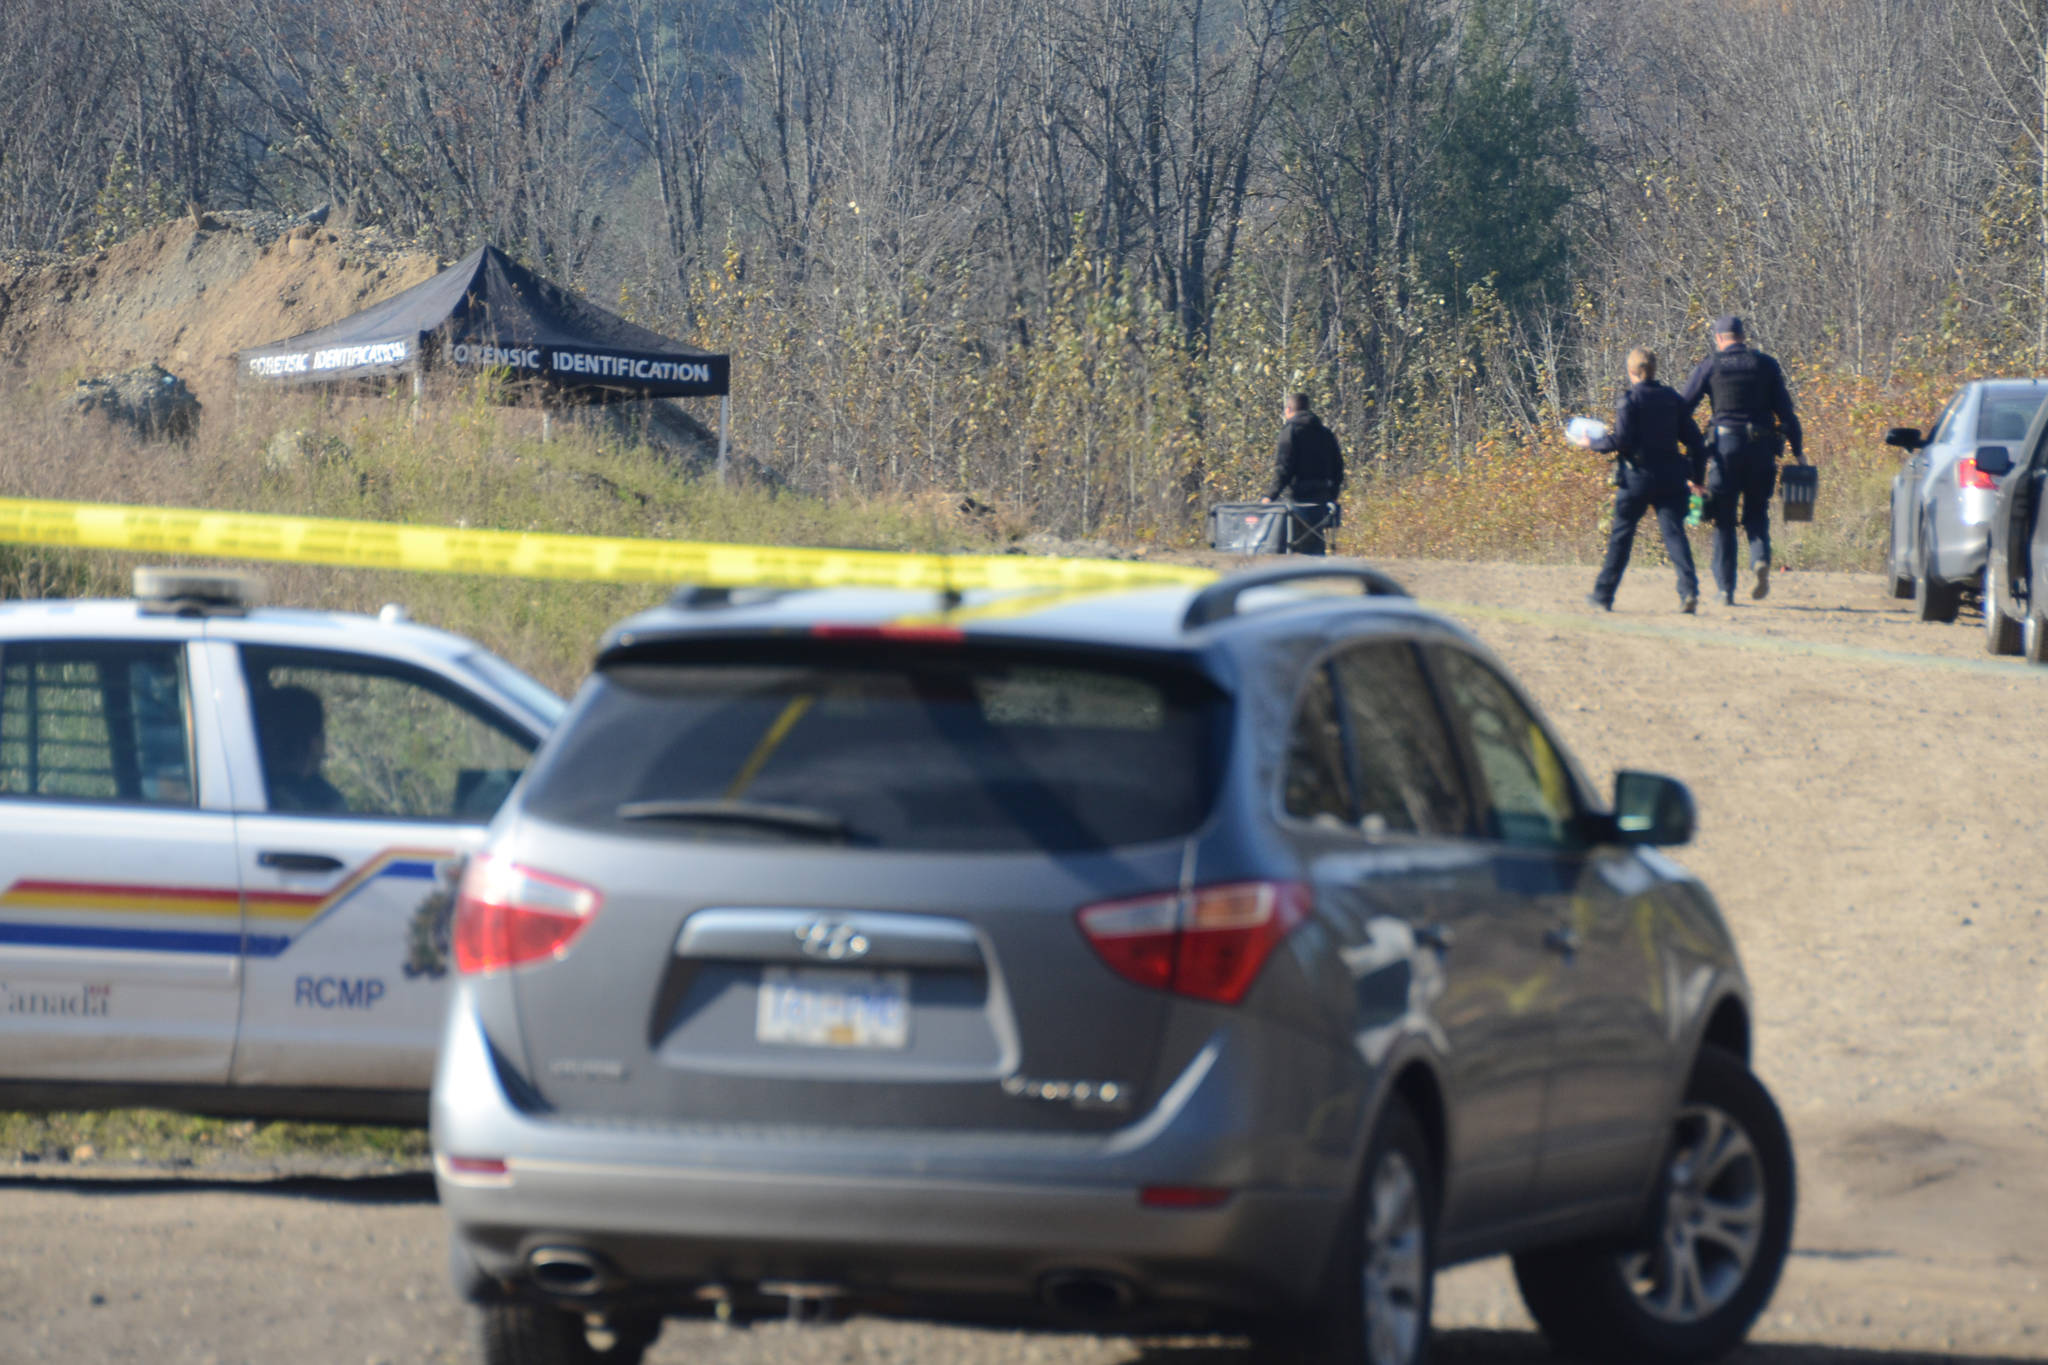 Homicide investigators were on scene Nov. 1, 2019 following the discovery of a body on the Soowahlie First Nation reserve off Sleepy Hollow Road near Cultus Lake, south of Chilliwack. (Paul Henderson/ The Progress)